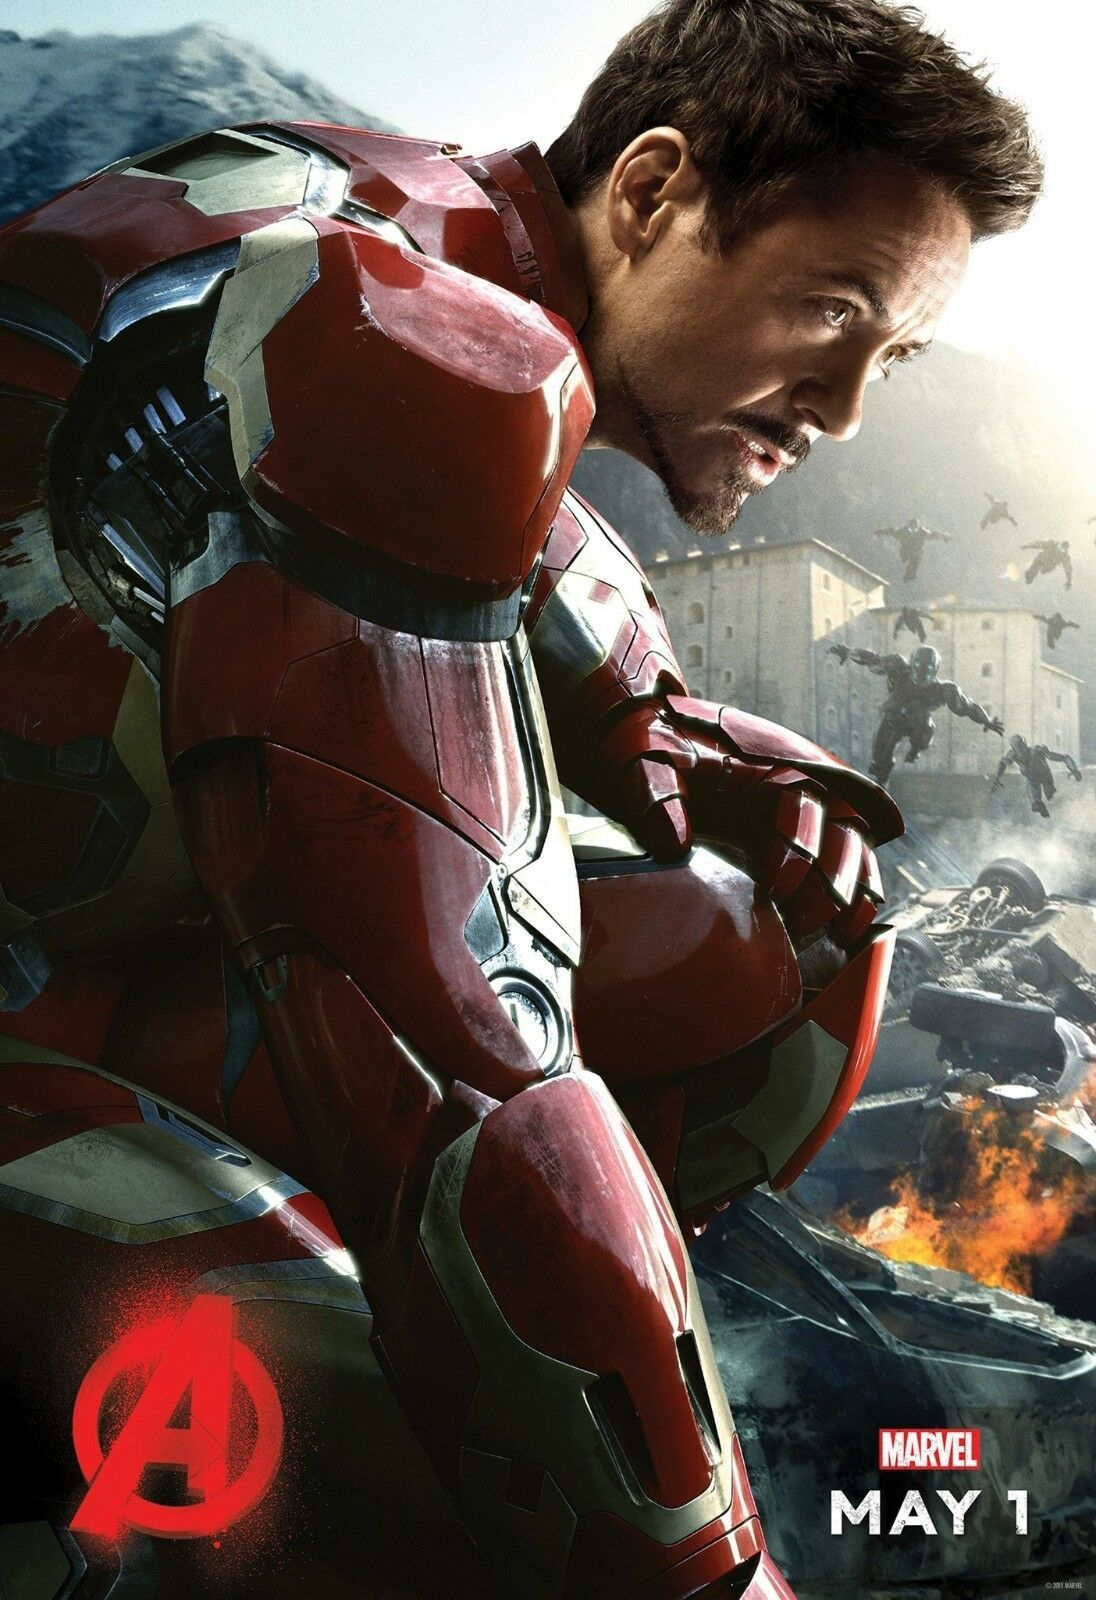 Details about MARVEL The Avengers : Age of Ultron Iron Man Tony